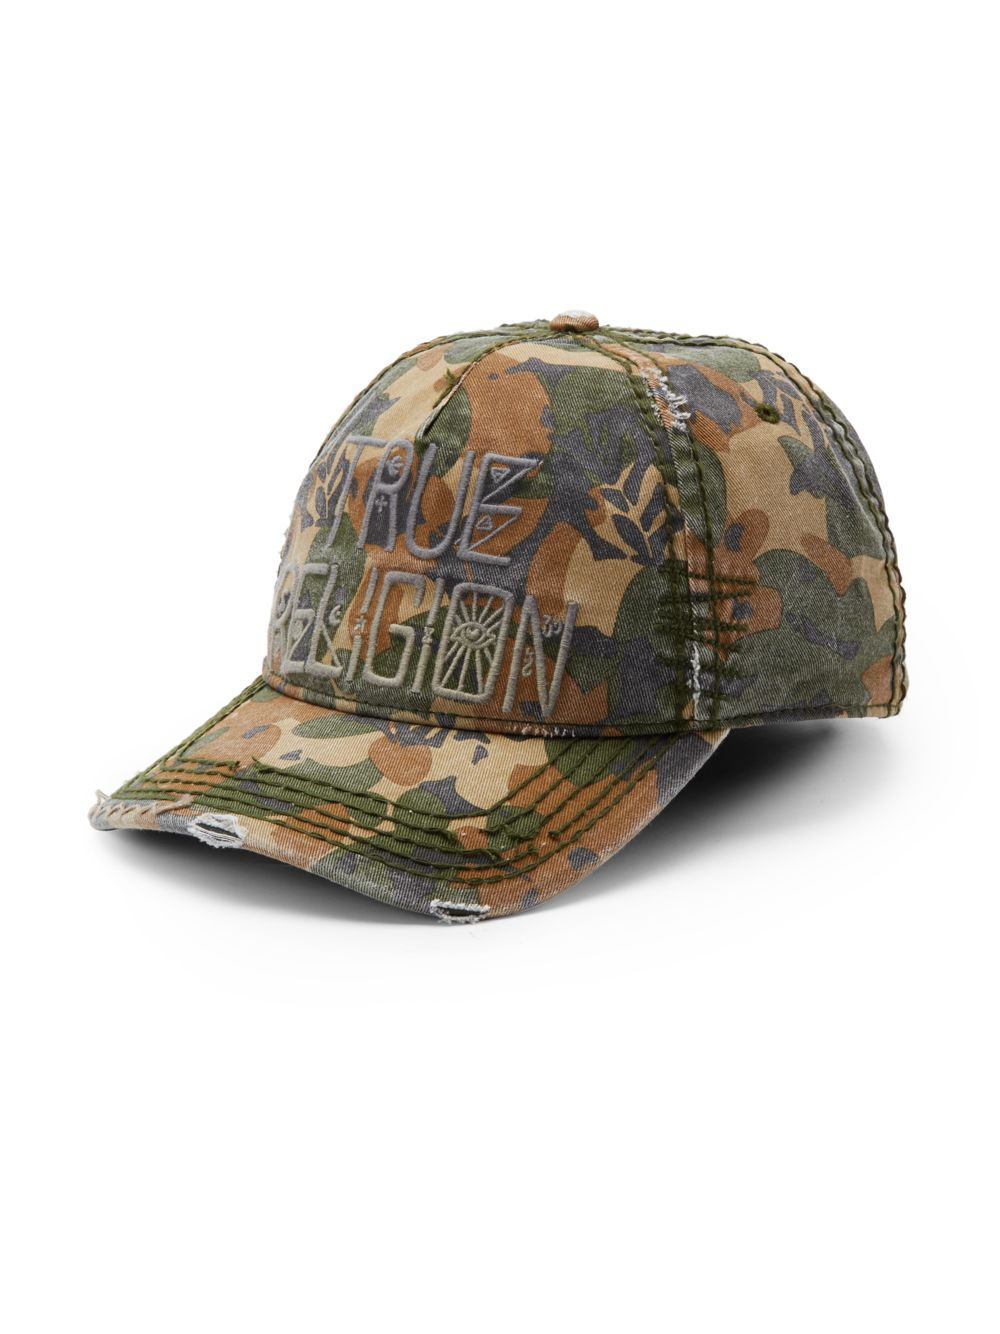 6438c2cca5d ... get lyst true religion camouflageprint twill baseball cap in green for  men a3e42 4b928